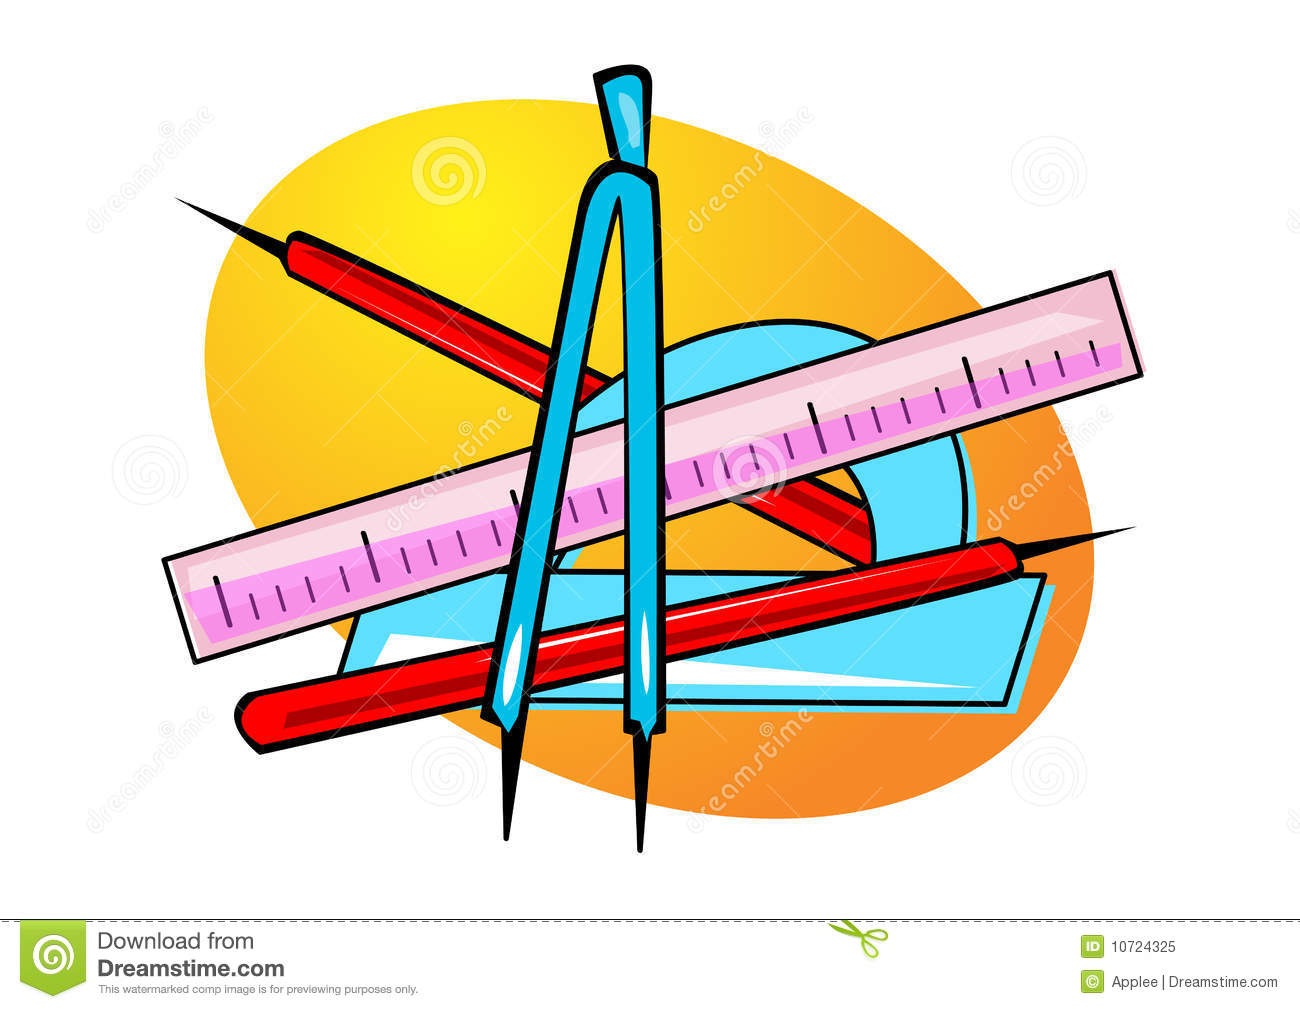 Geometry Clipart Trigonometry Clipart Ge-Geometry Clipart Trigonometry Clipart Geometry Tools Clipart Geometry-11